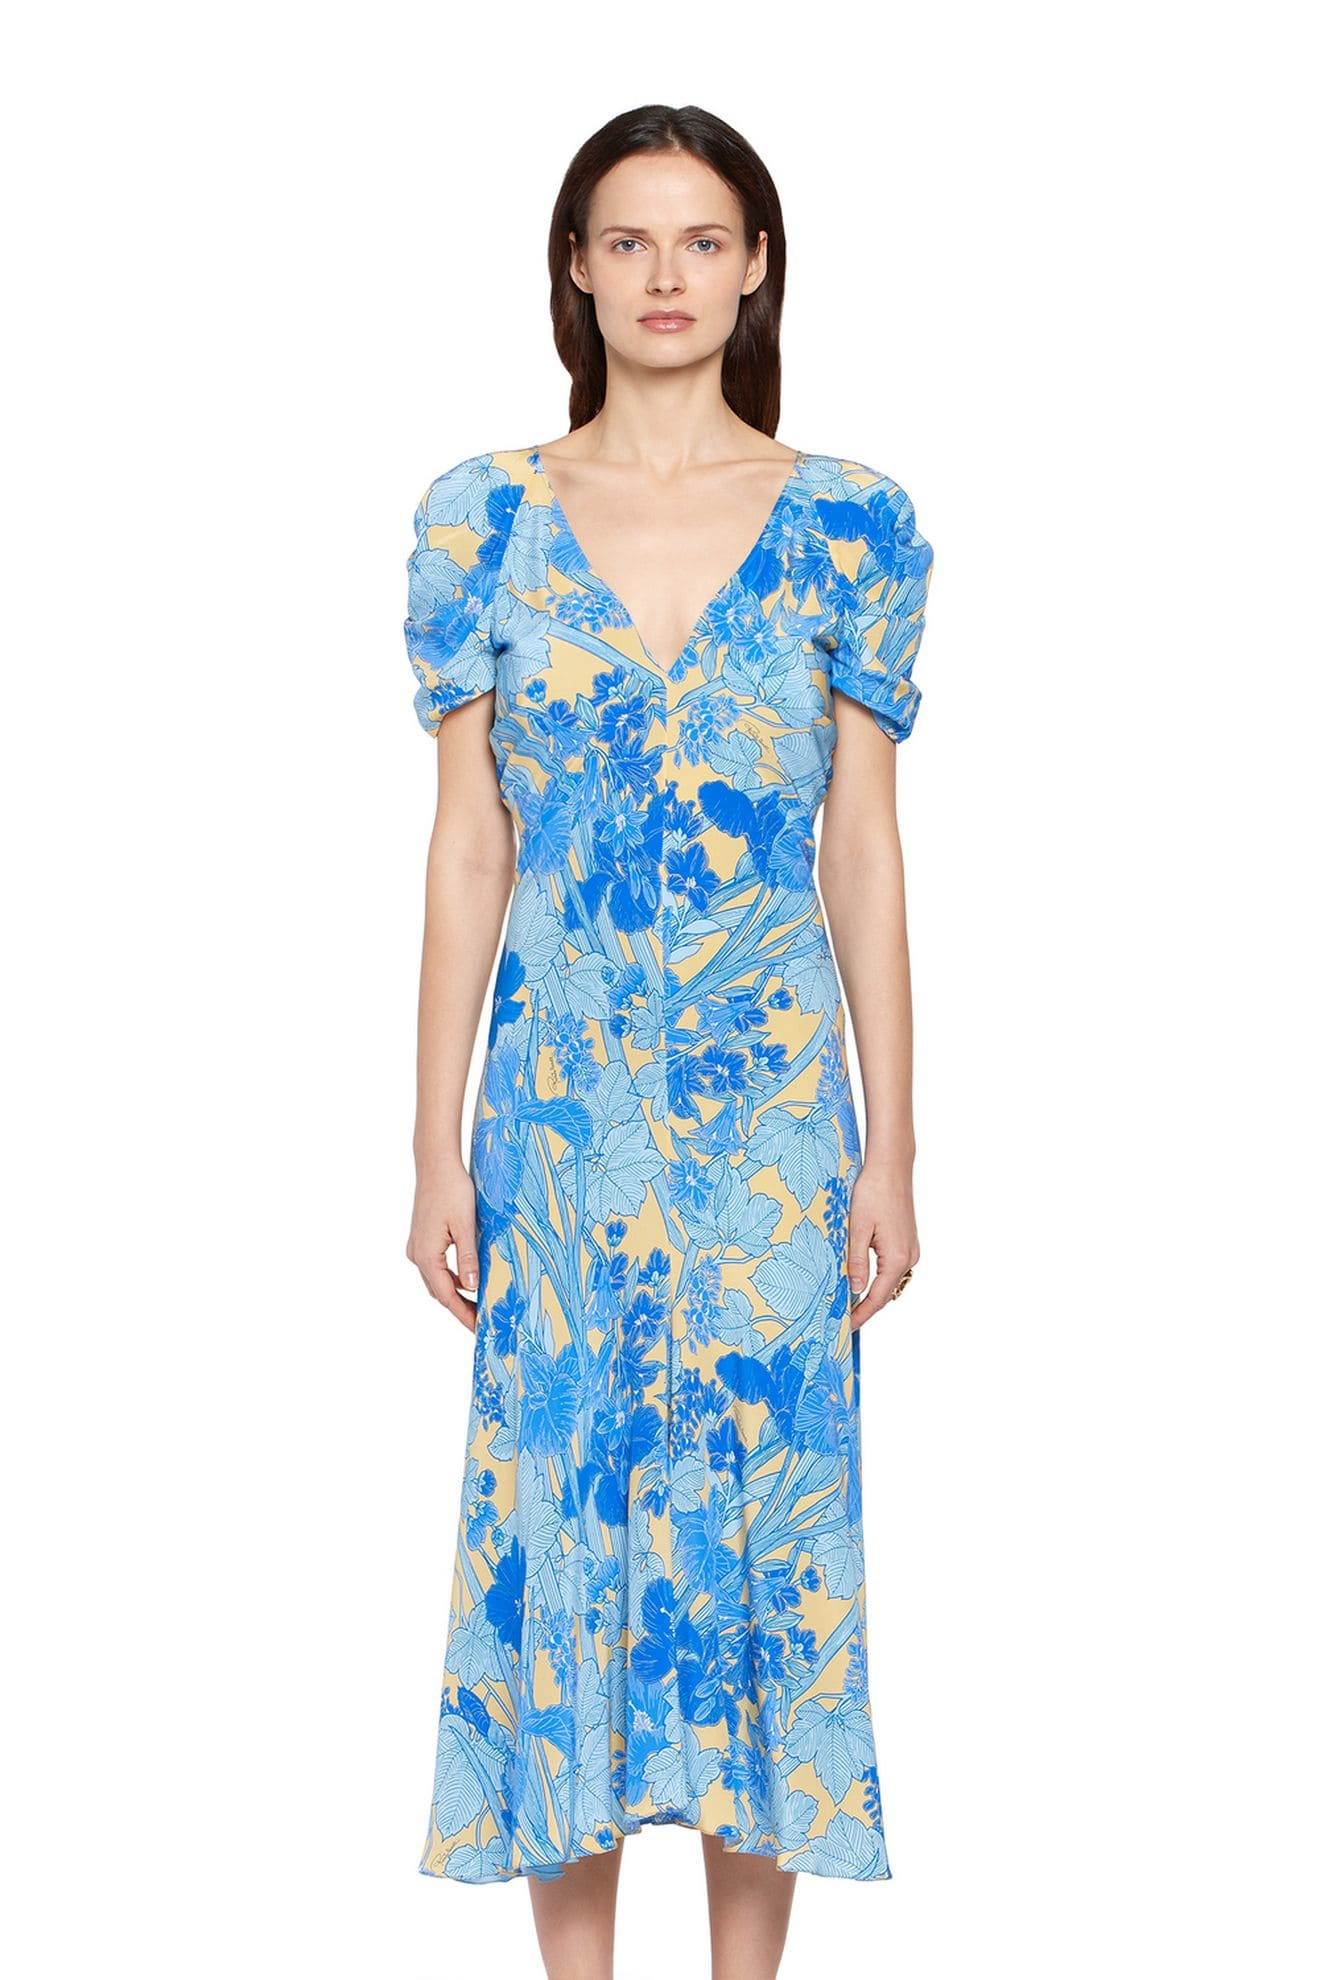 roberto-cavalli-summer-garden-print-silk-dress_12918552_13763961_1320